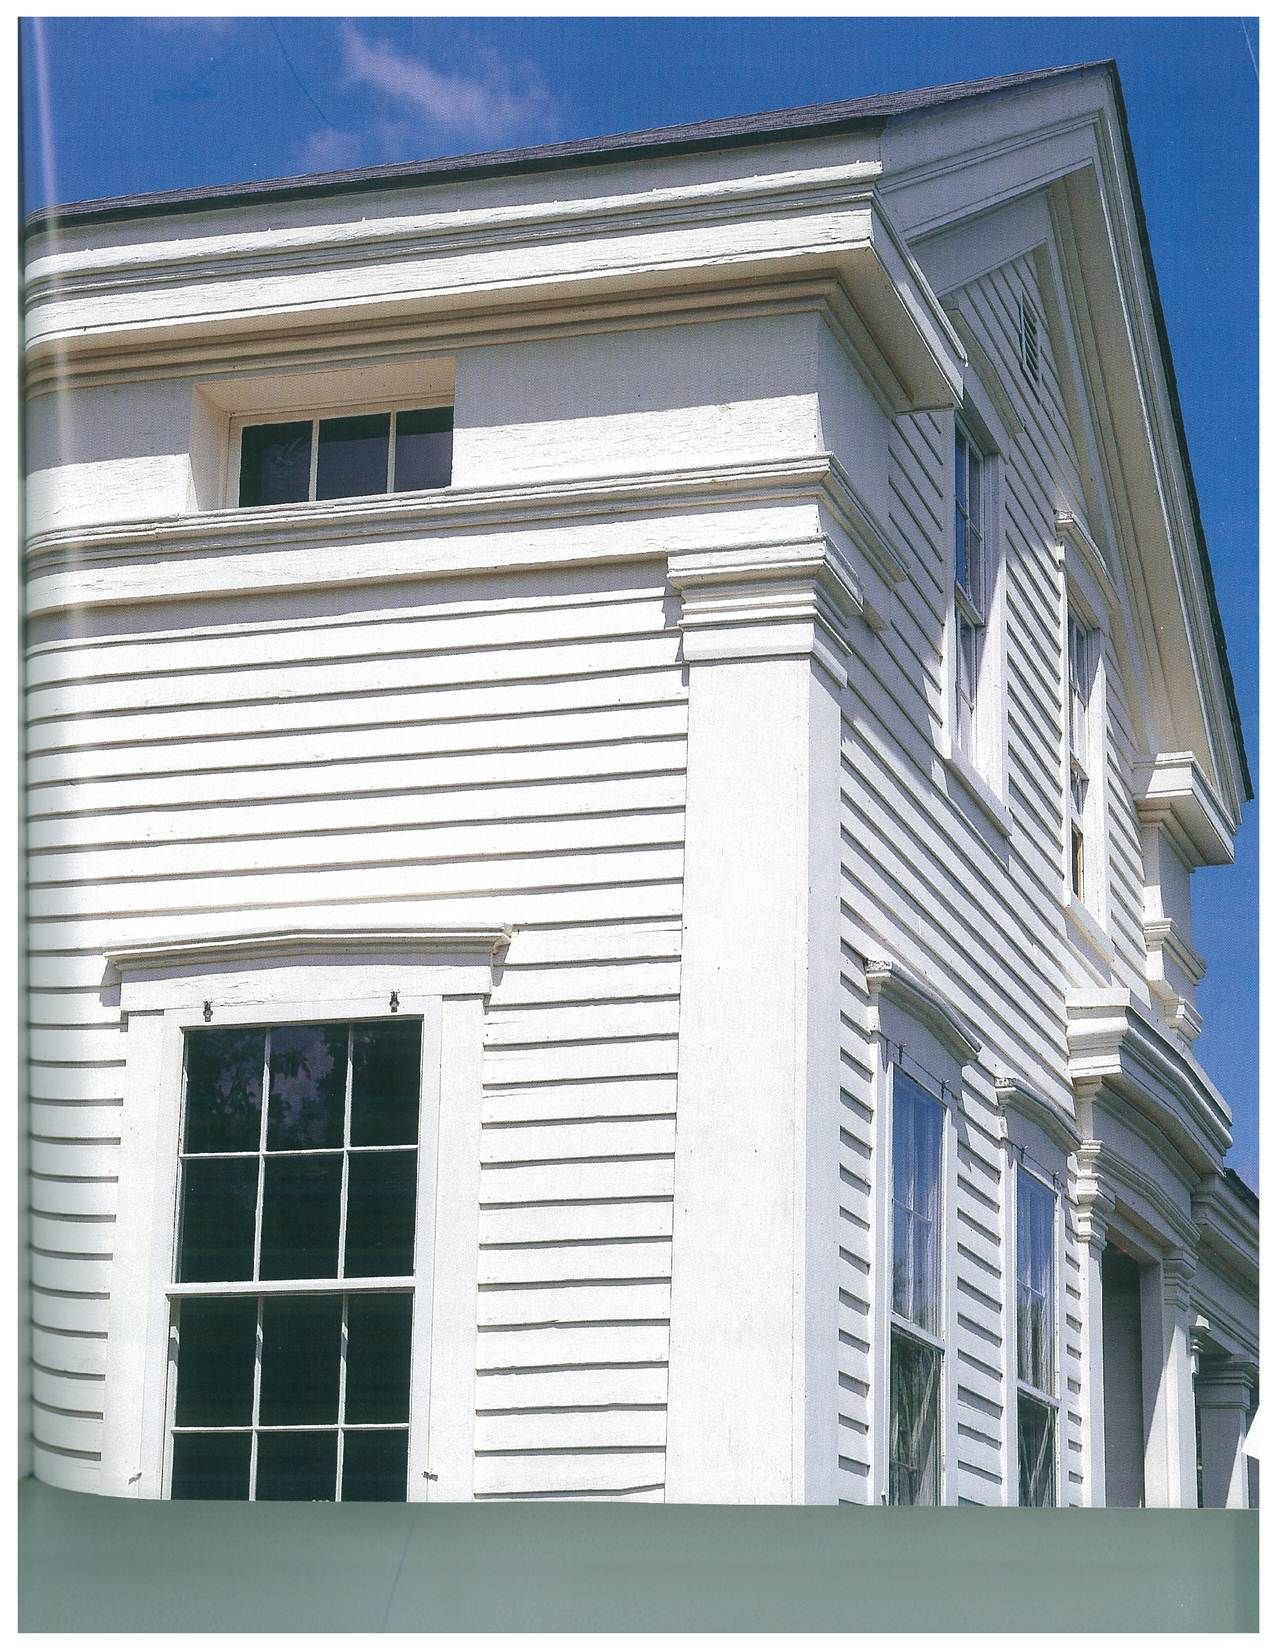 Exterior Cornice Trim And Windows In The Frieze Boards Colonial Trim Over The Windows Built Up